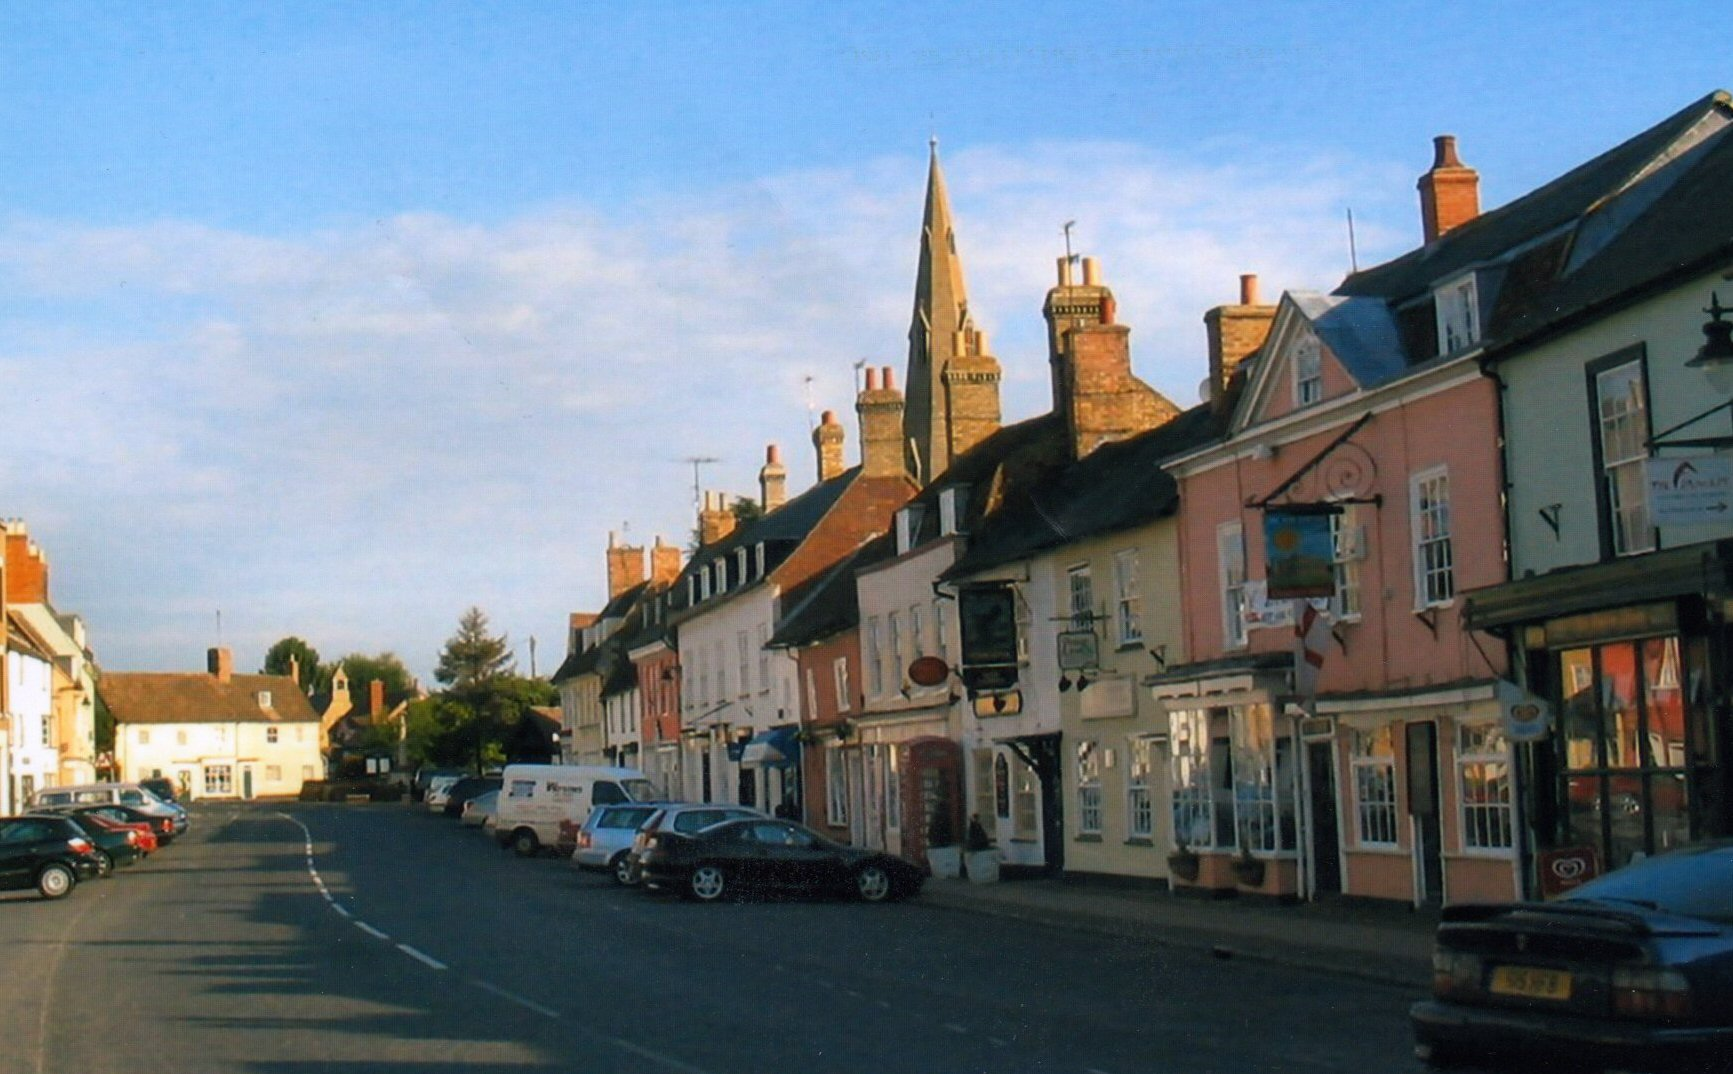 http://standrew-kimbolton.org.uk/wordpress/wp-content/uploads/High-Street-west.jpg